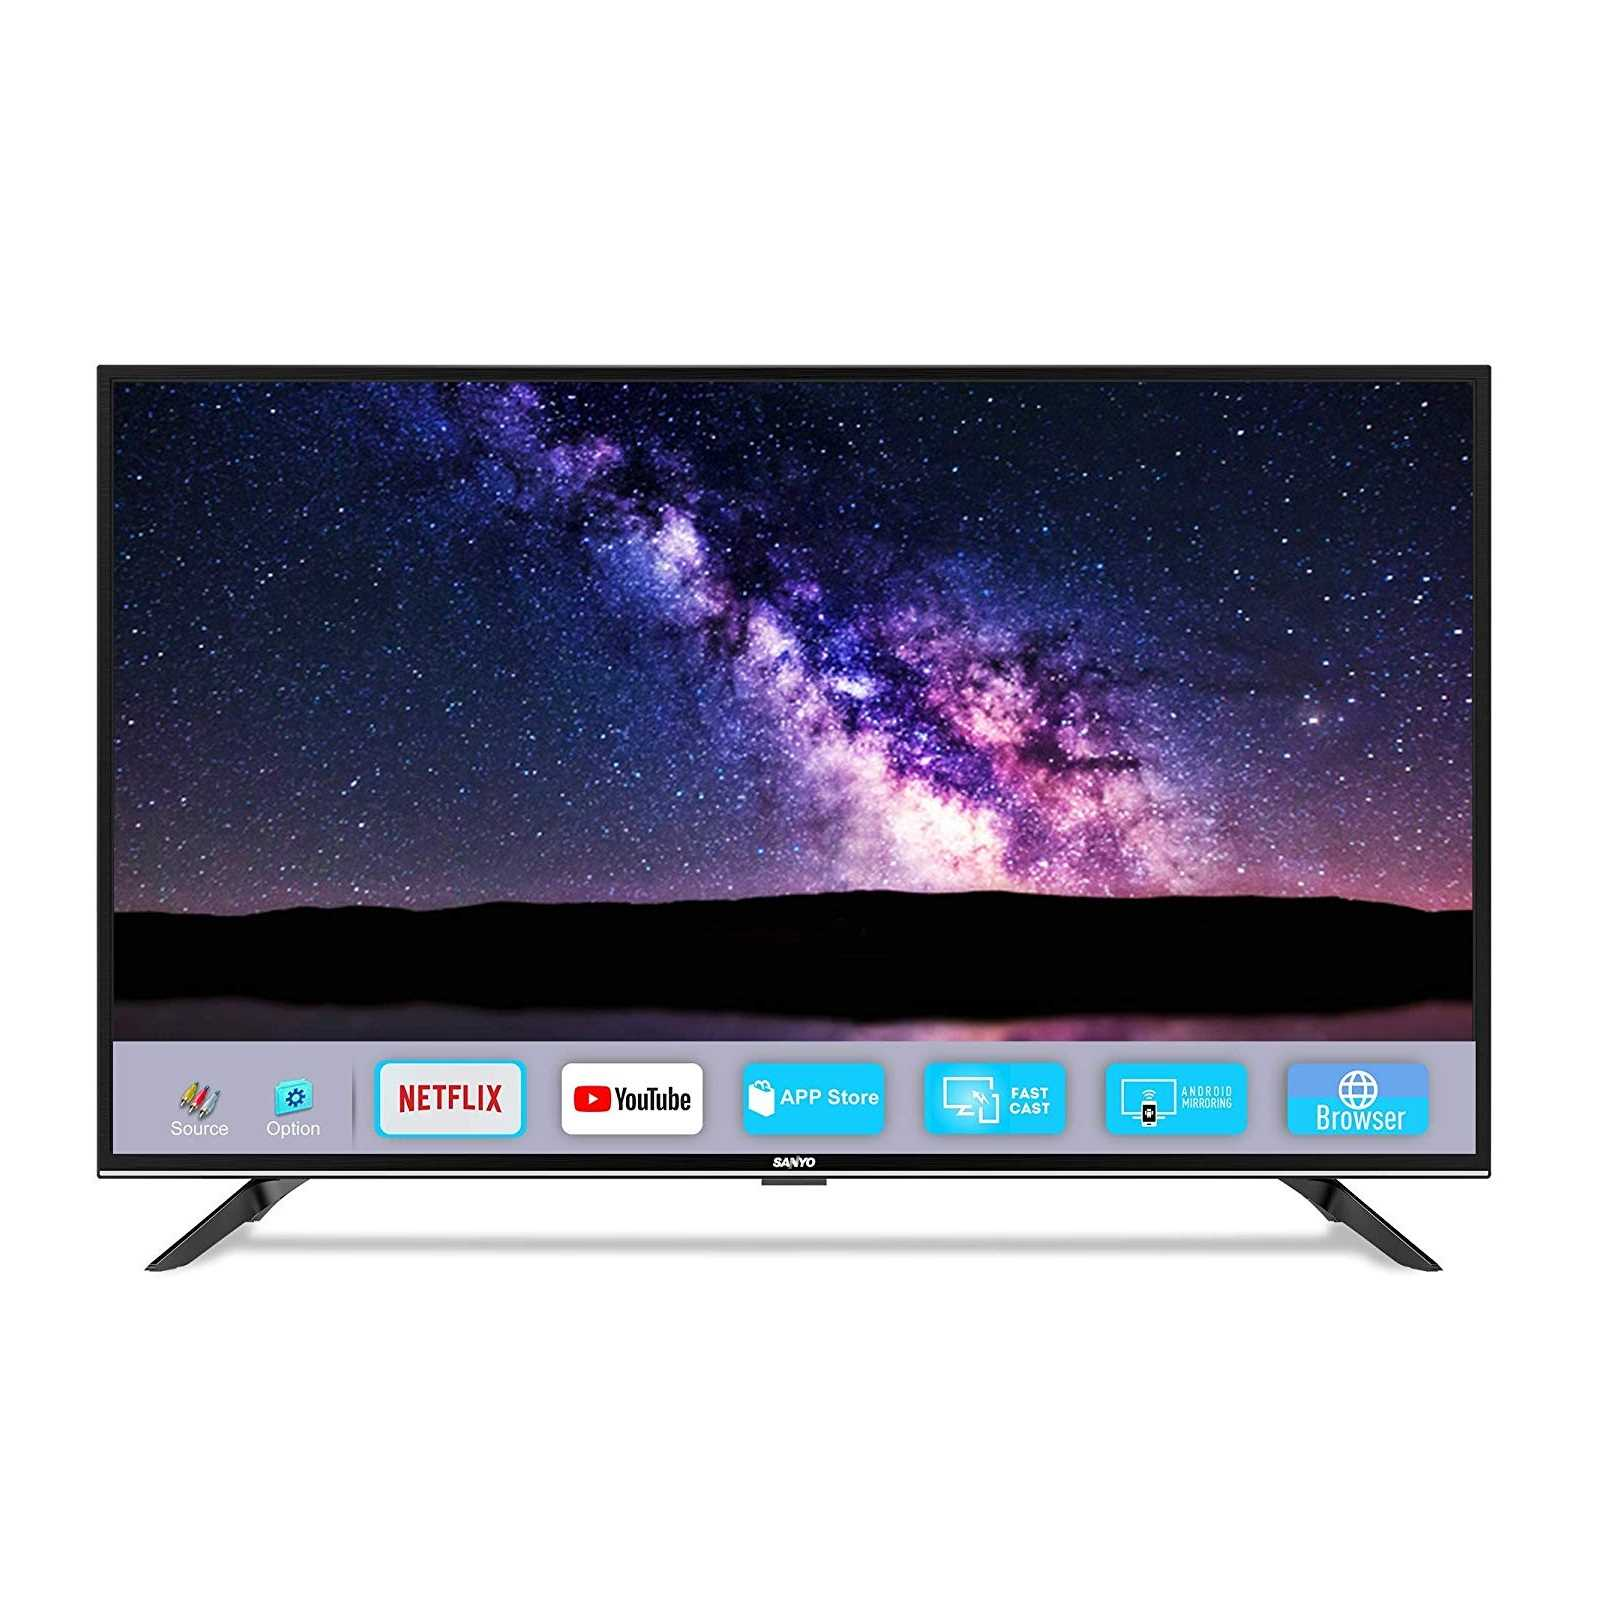 Sanyo Nebula XT-43A081F 43 Inch Full HD Smart IPS LED Television